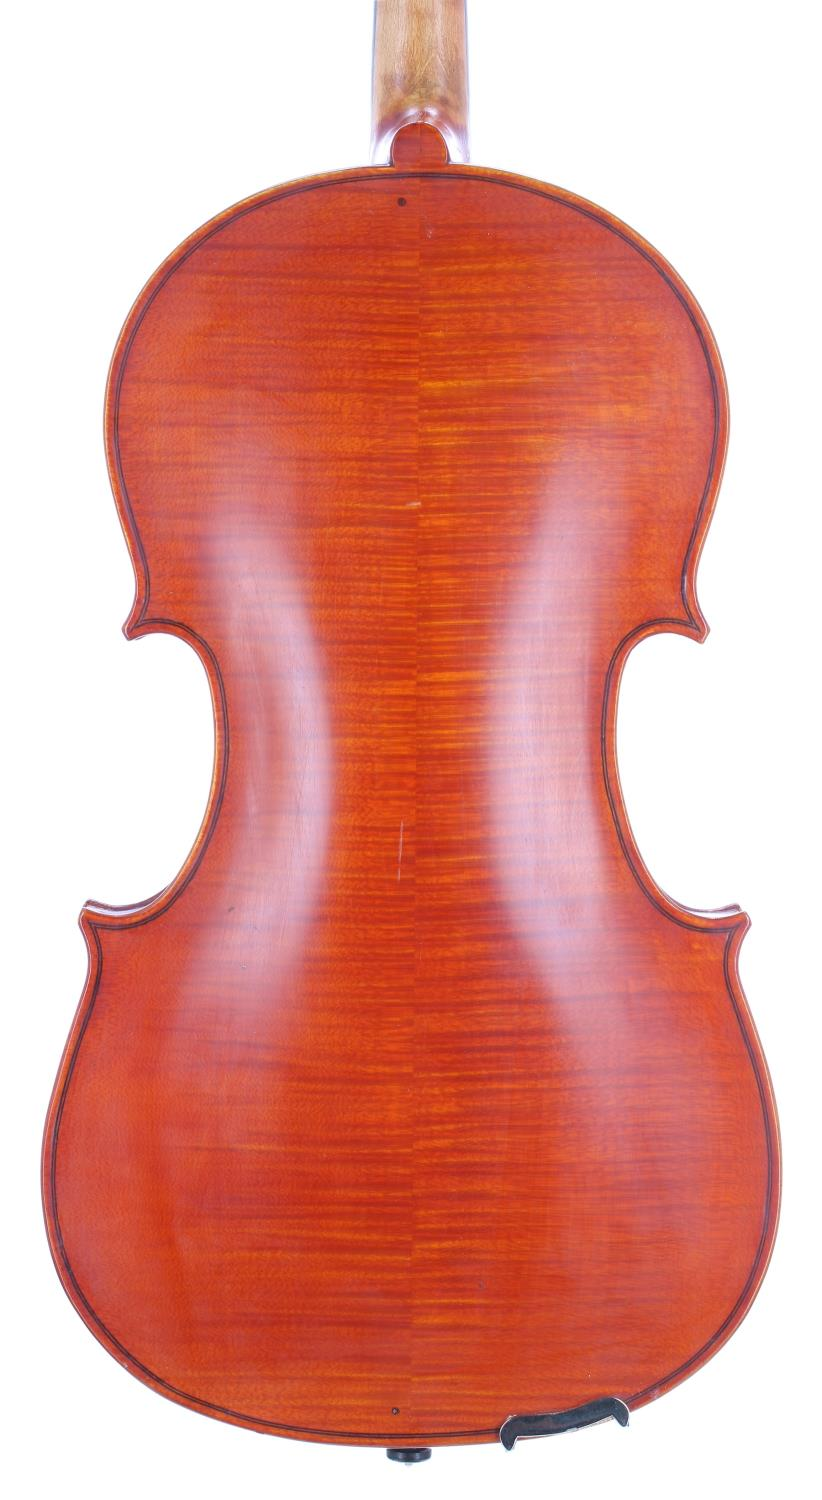 English viola by and labelled Dennis G. Plowright, 22 Murray Road, Northwood, no. 95 (viola no. 59), - Image 2 of 3